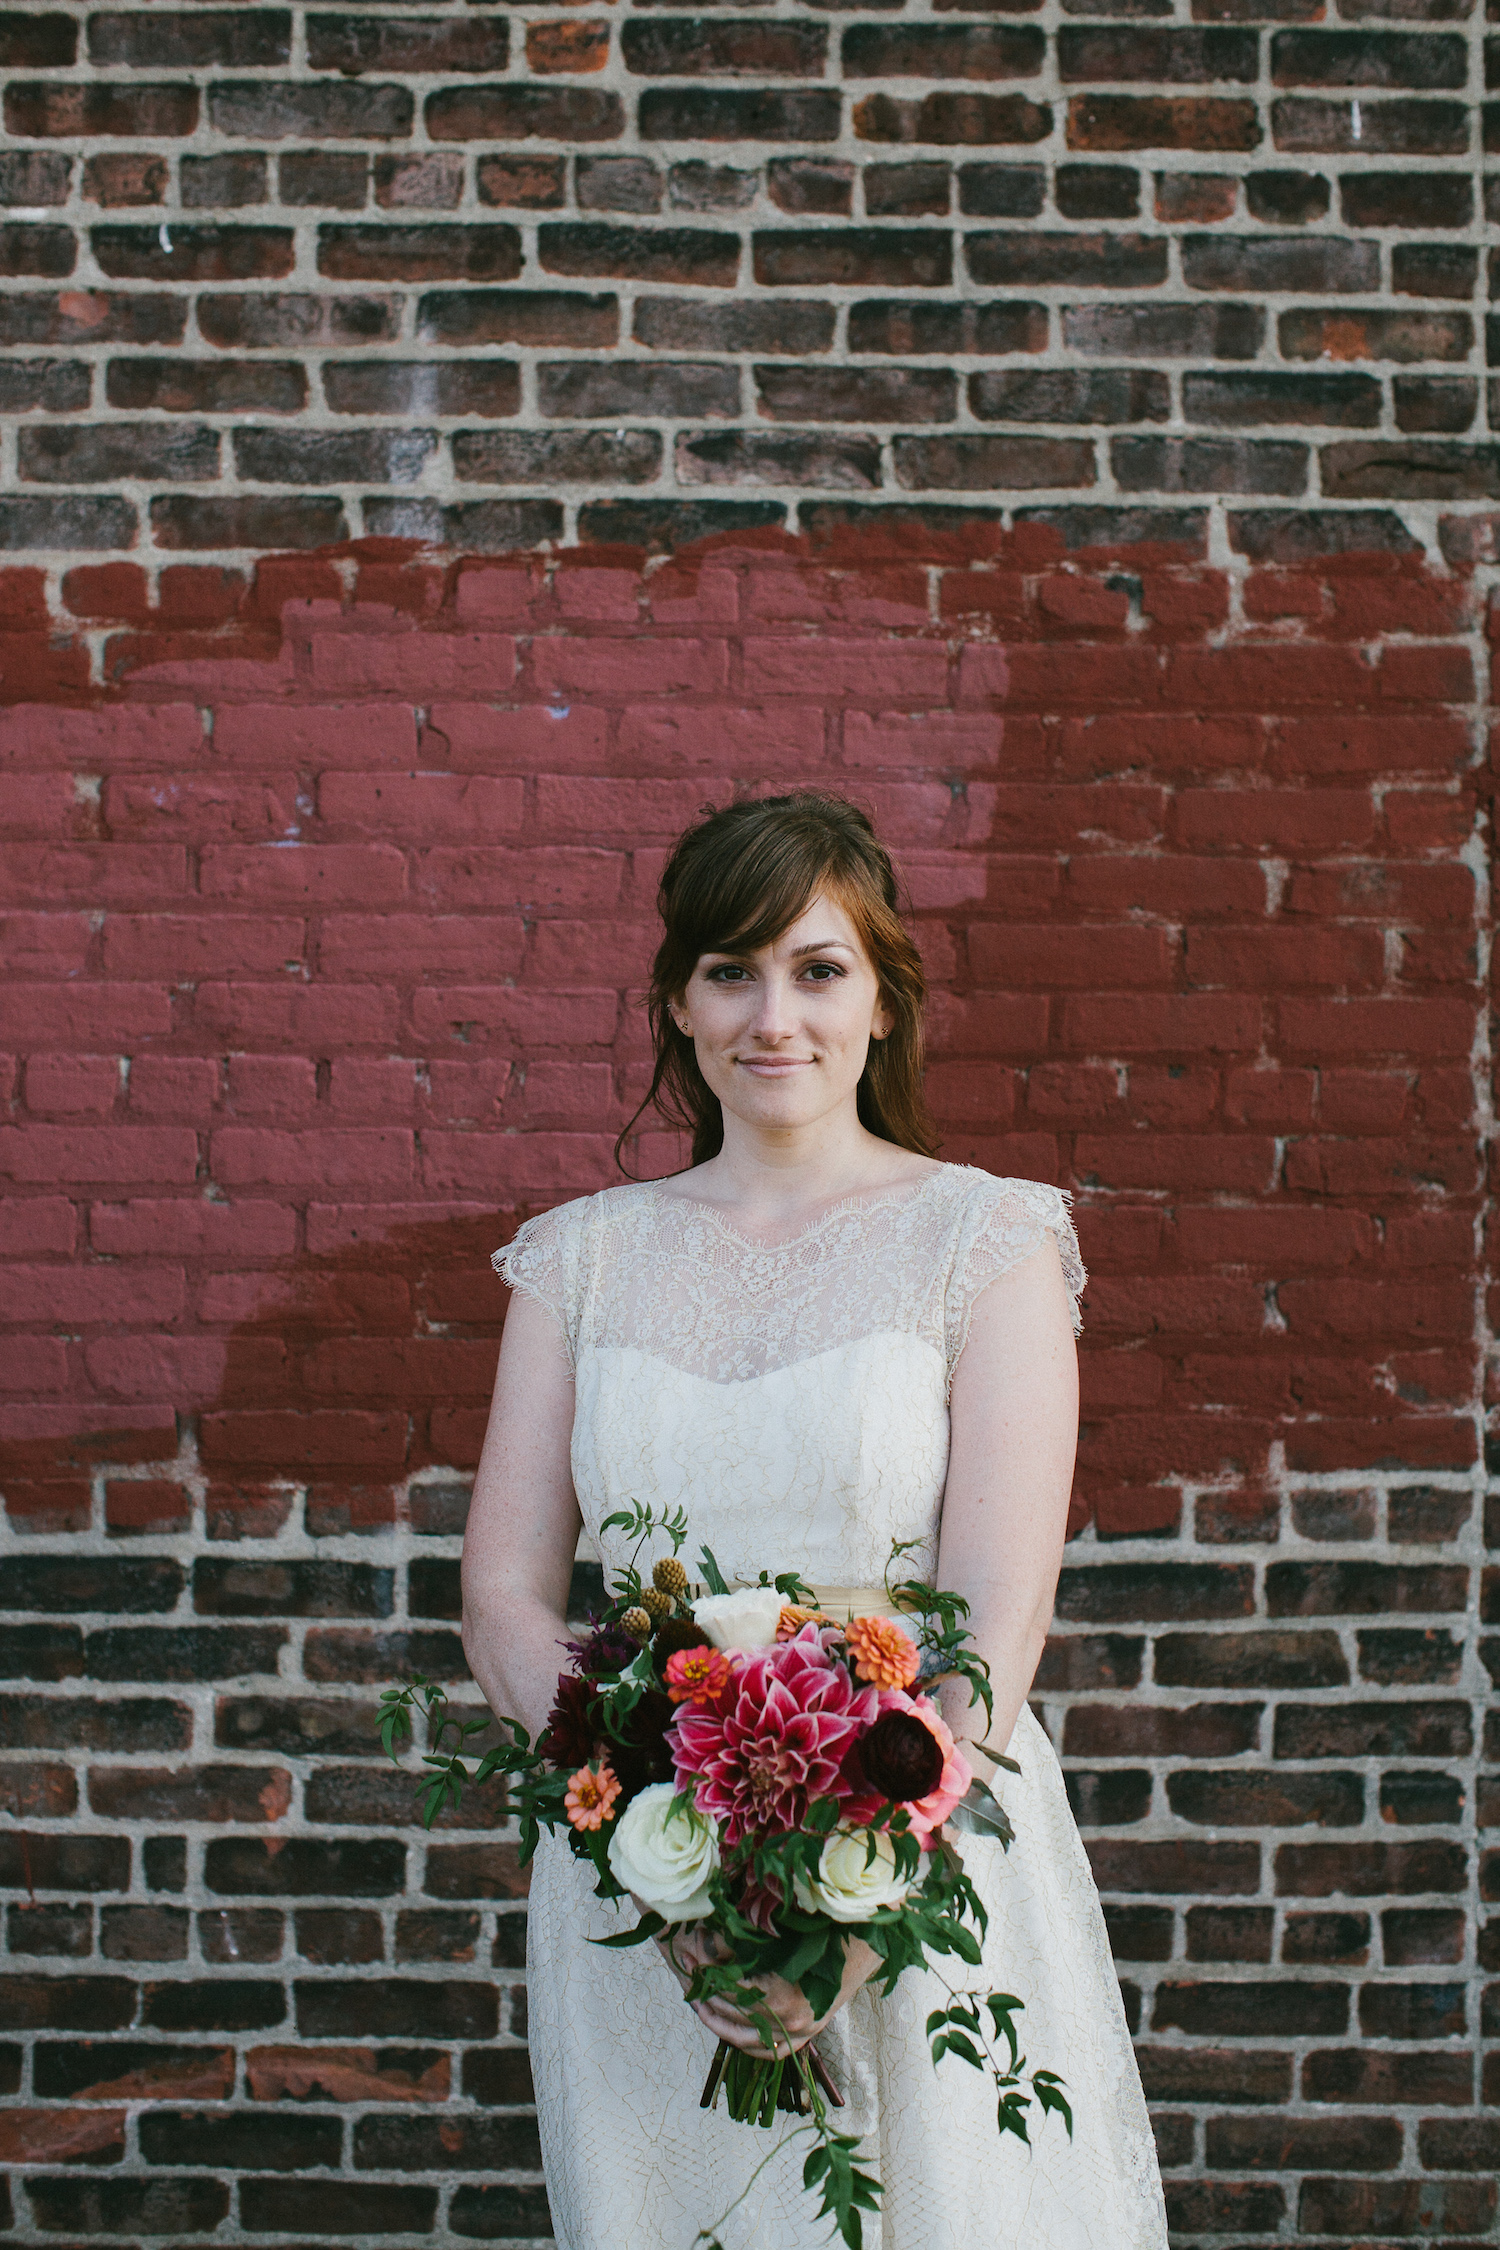 Full Aperture Floral & Corey Torpie Photography  - Brooklyn Wedding - 67.jpeg